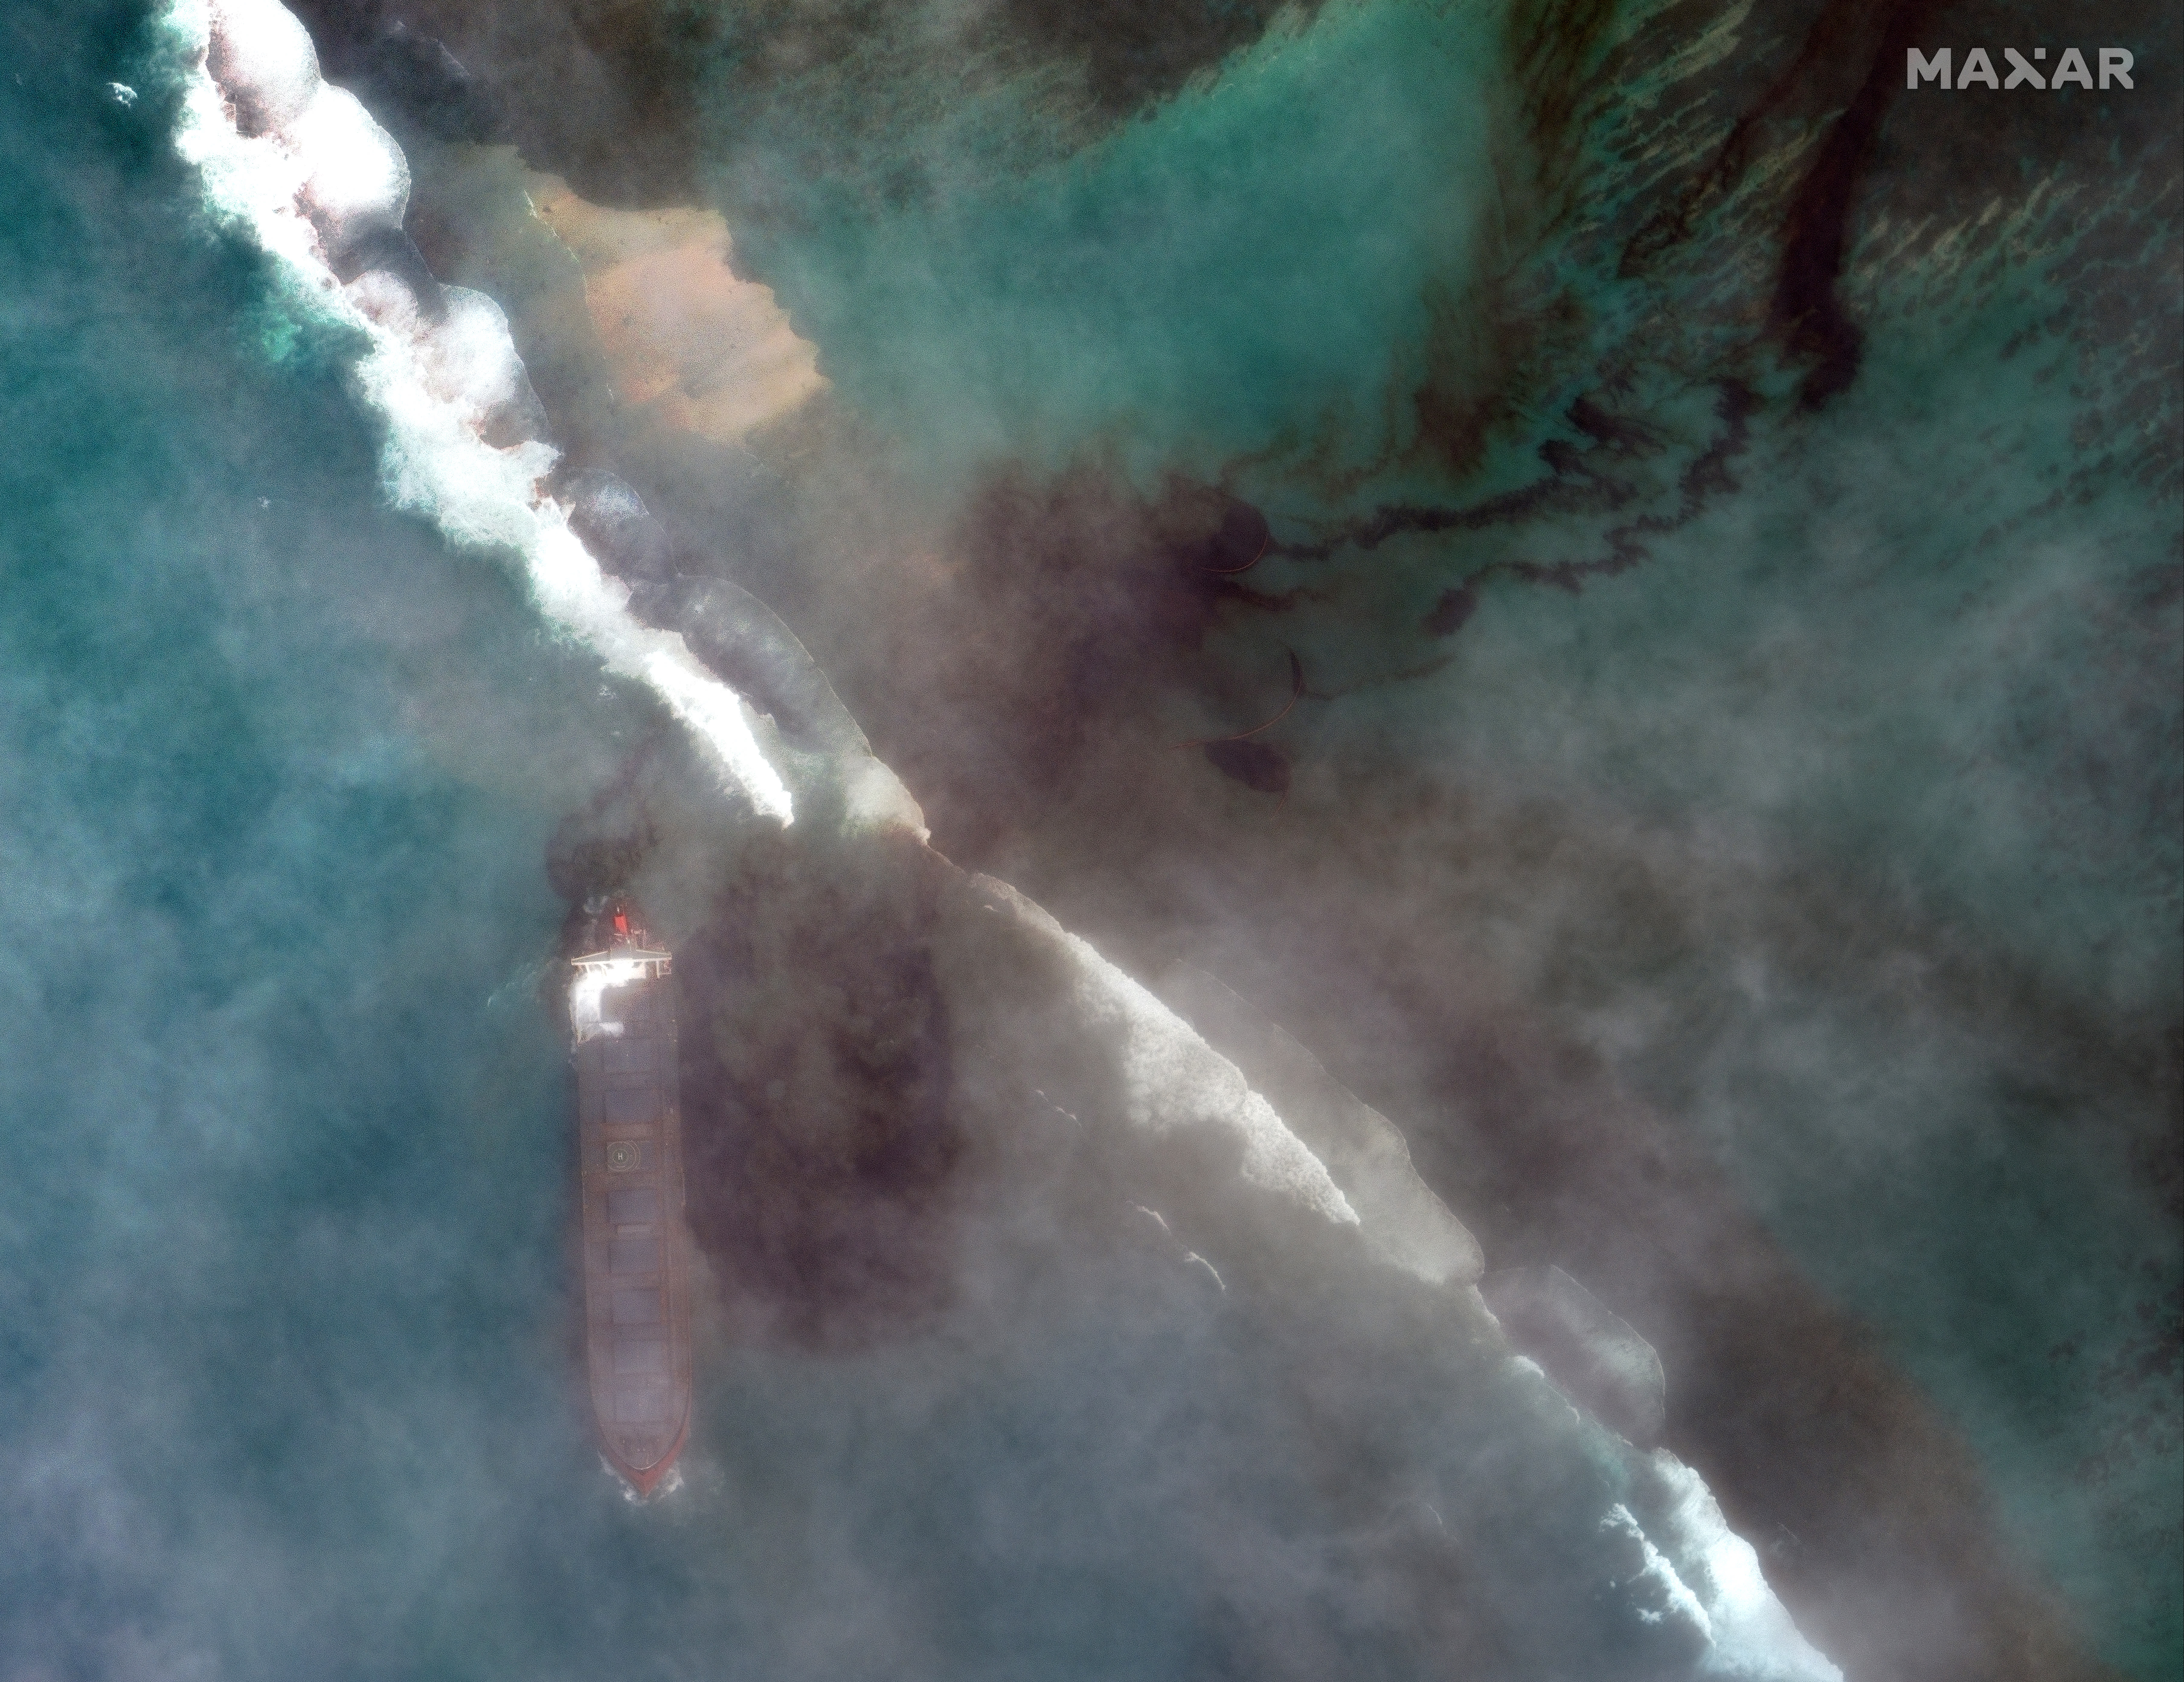 Mauritius Declares Emergency as Stranded Ship Spills Tons of Fuel